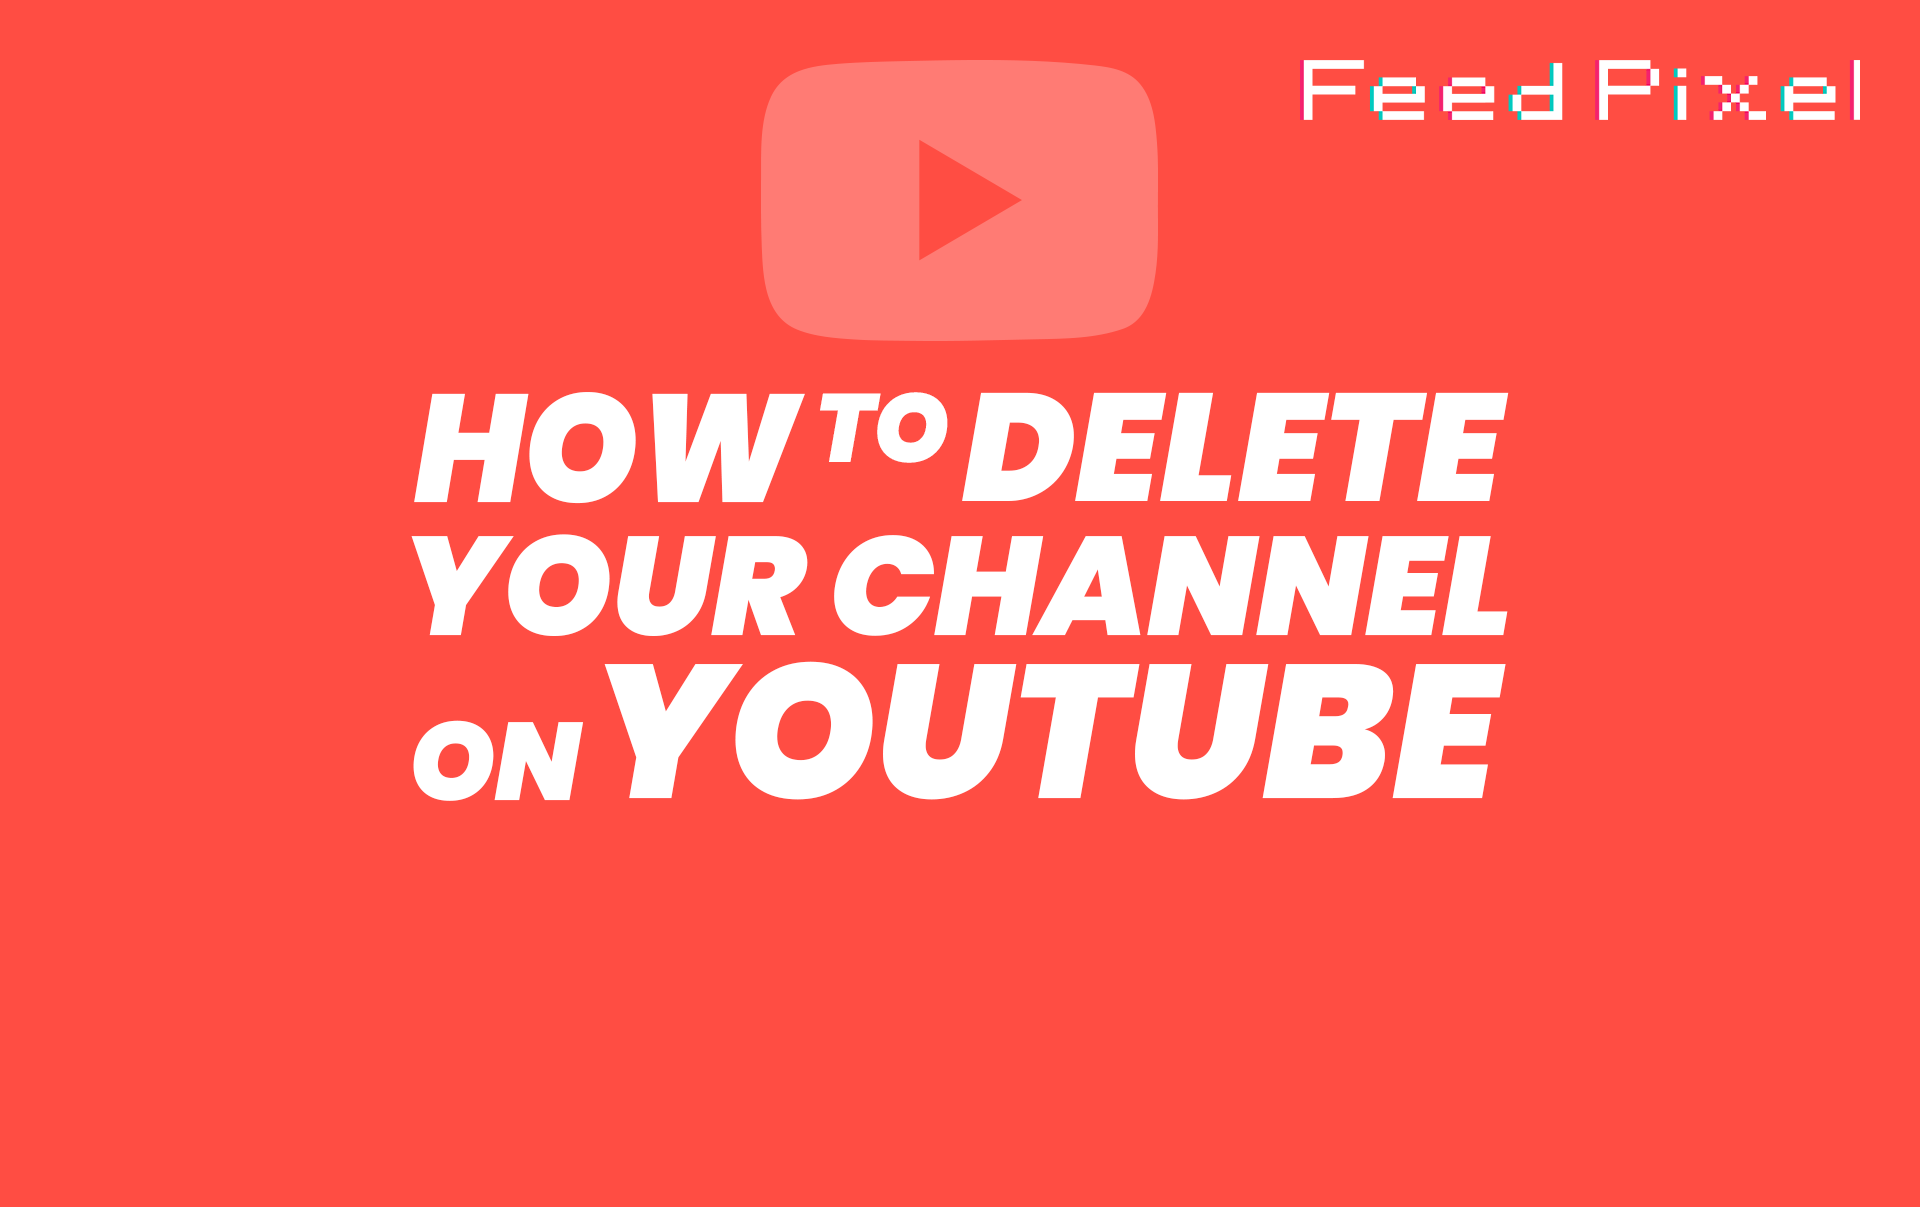 How To Delete a YouTube Channel?